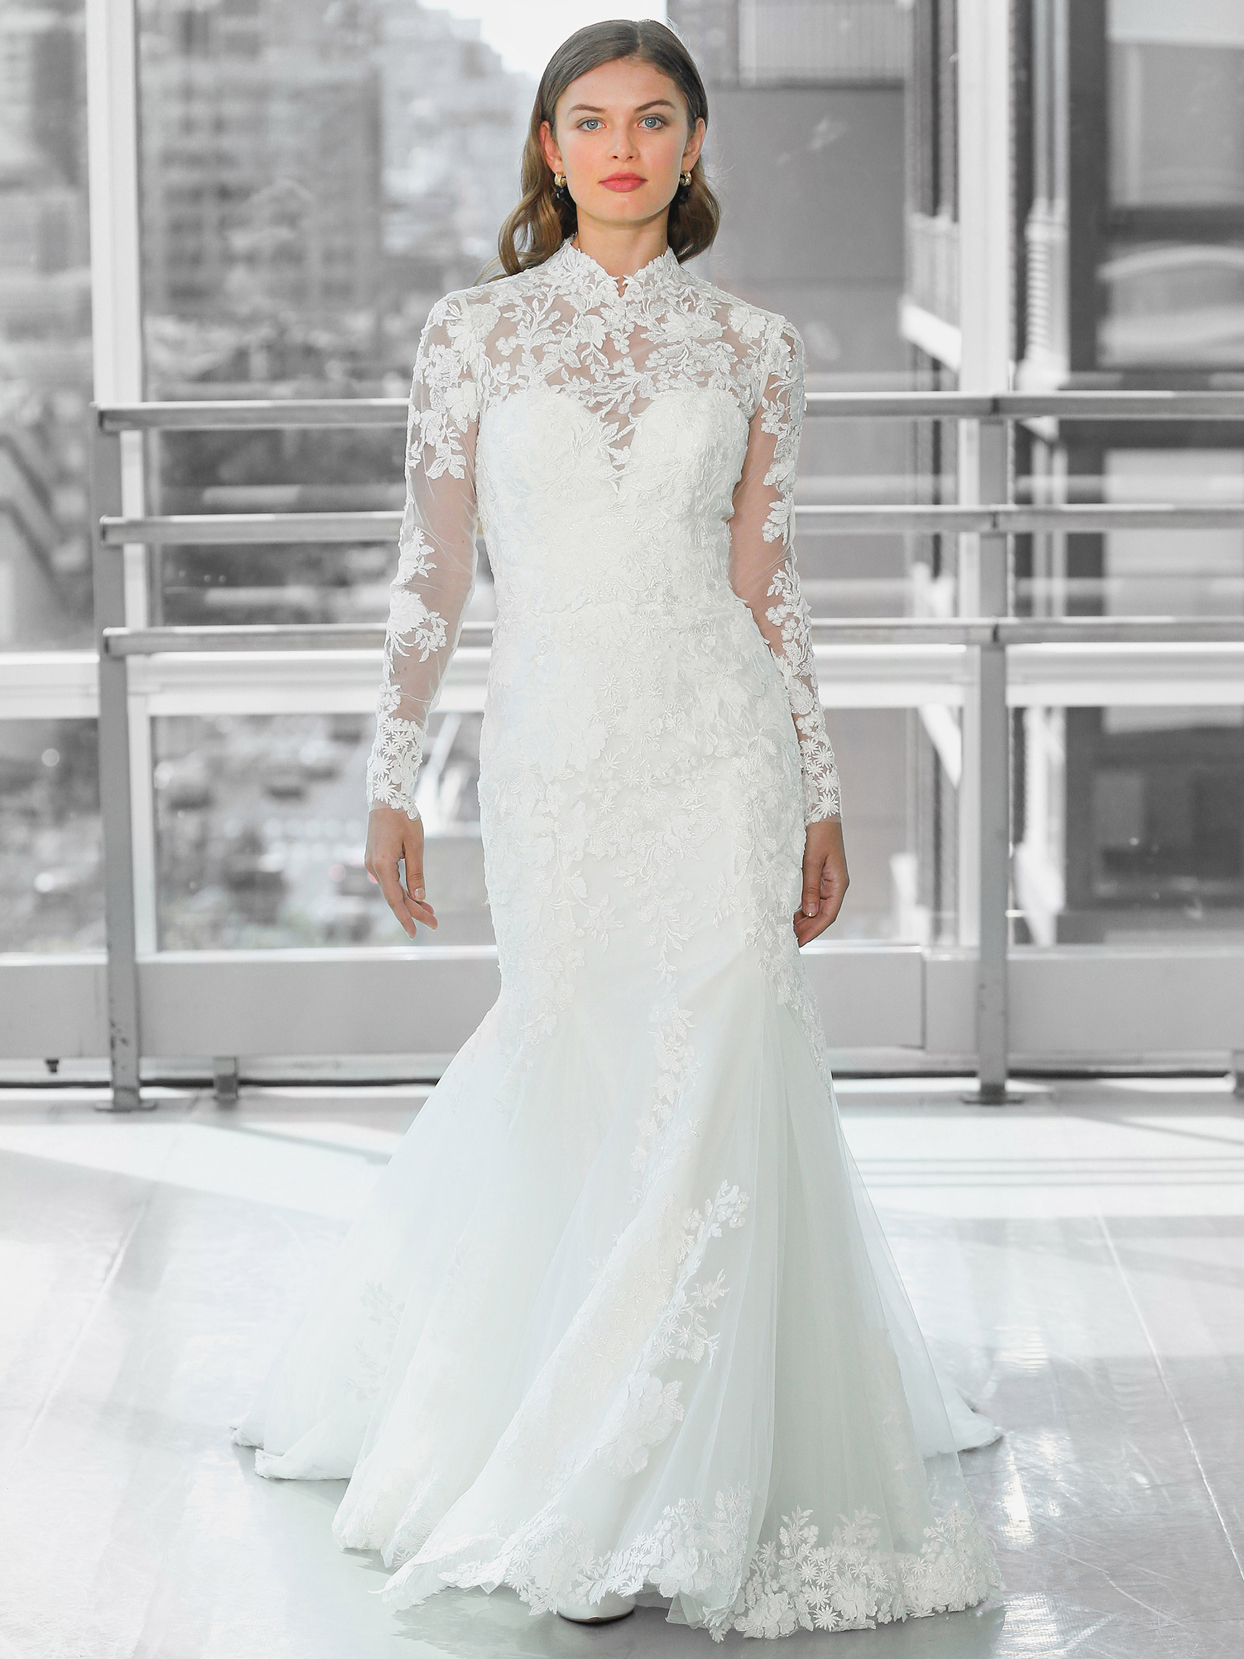 Justin Alexander Signature lace long sleeve illusion high neck mermaid wedding dress fall 2020